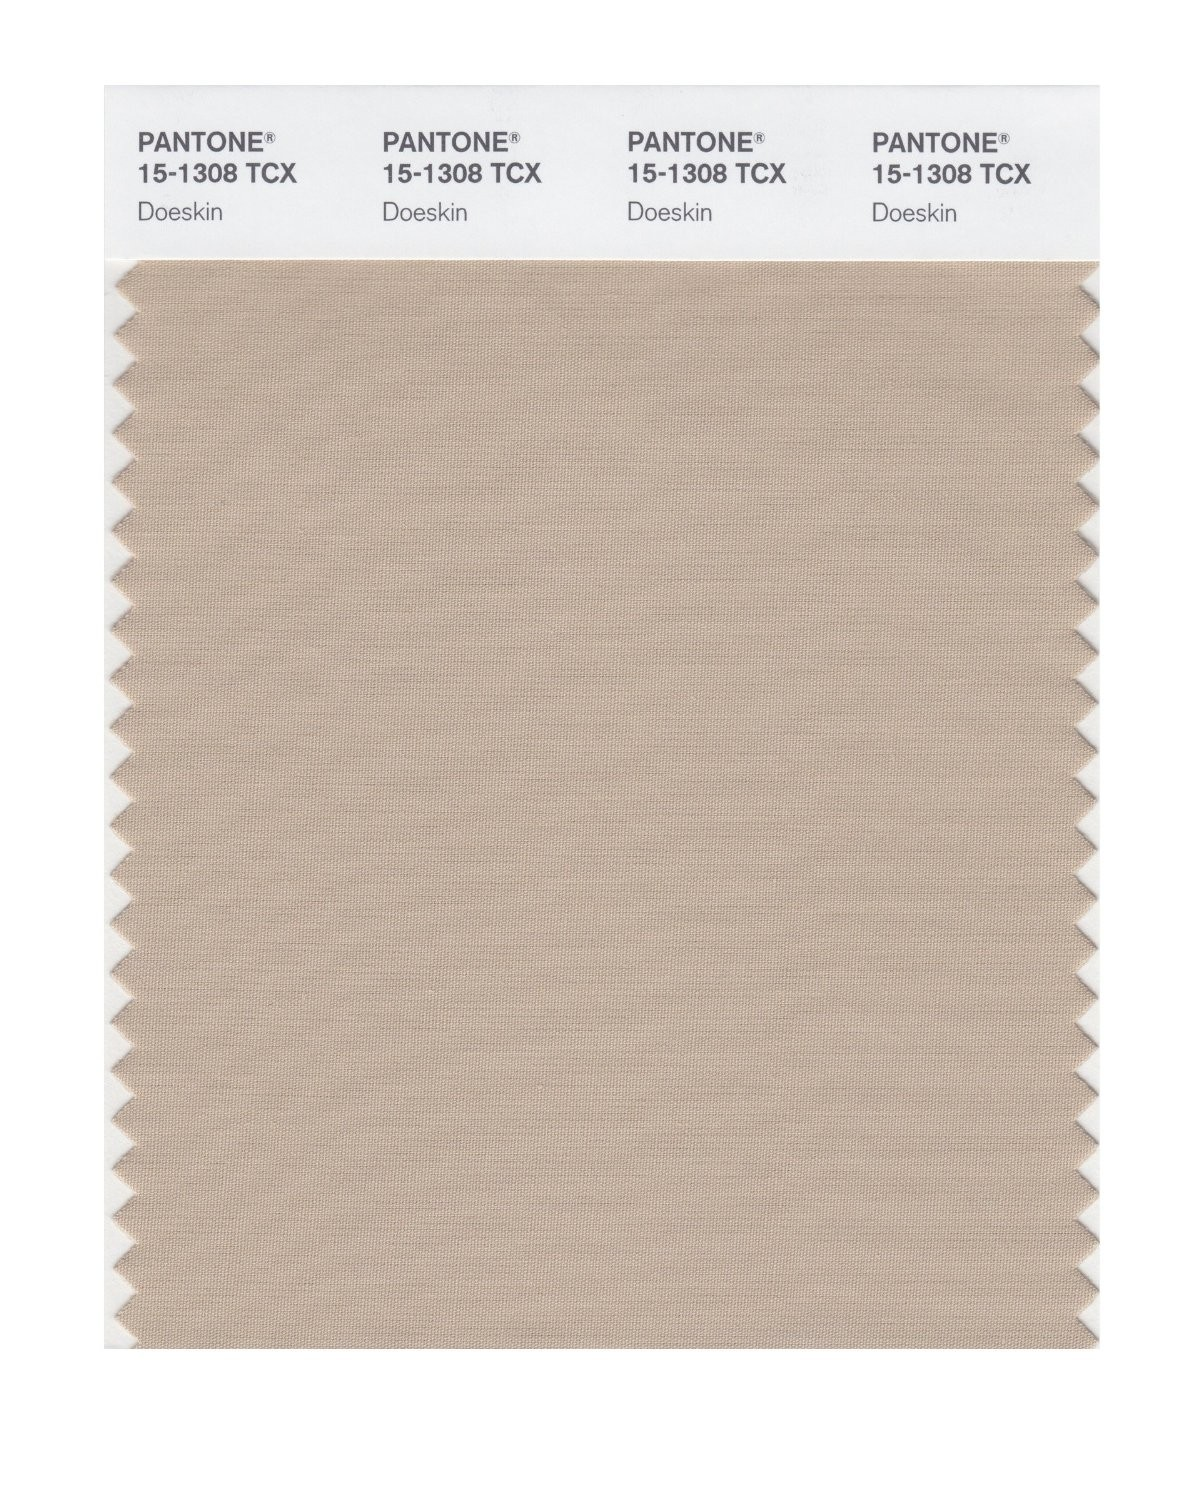 Pantone 15-1308 TCX Swatch Card Doeskin